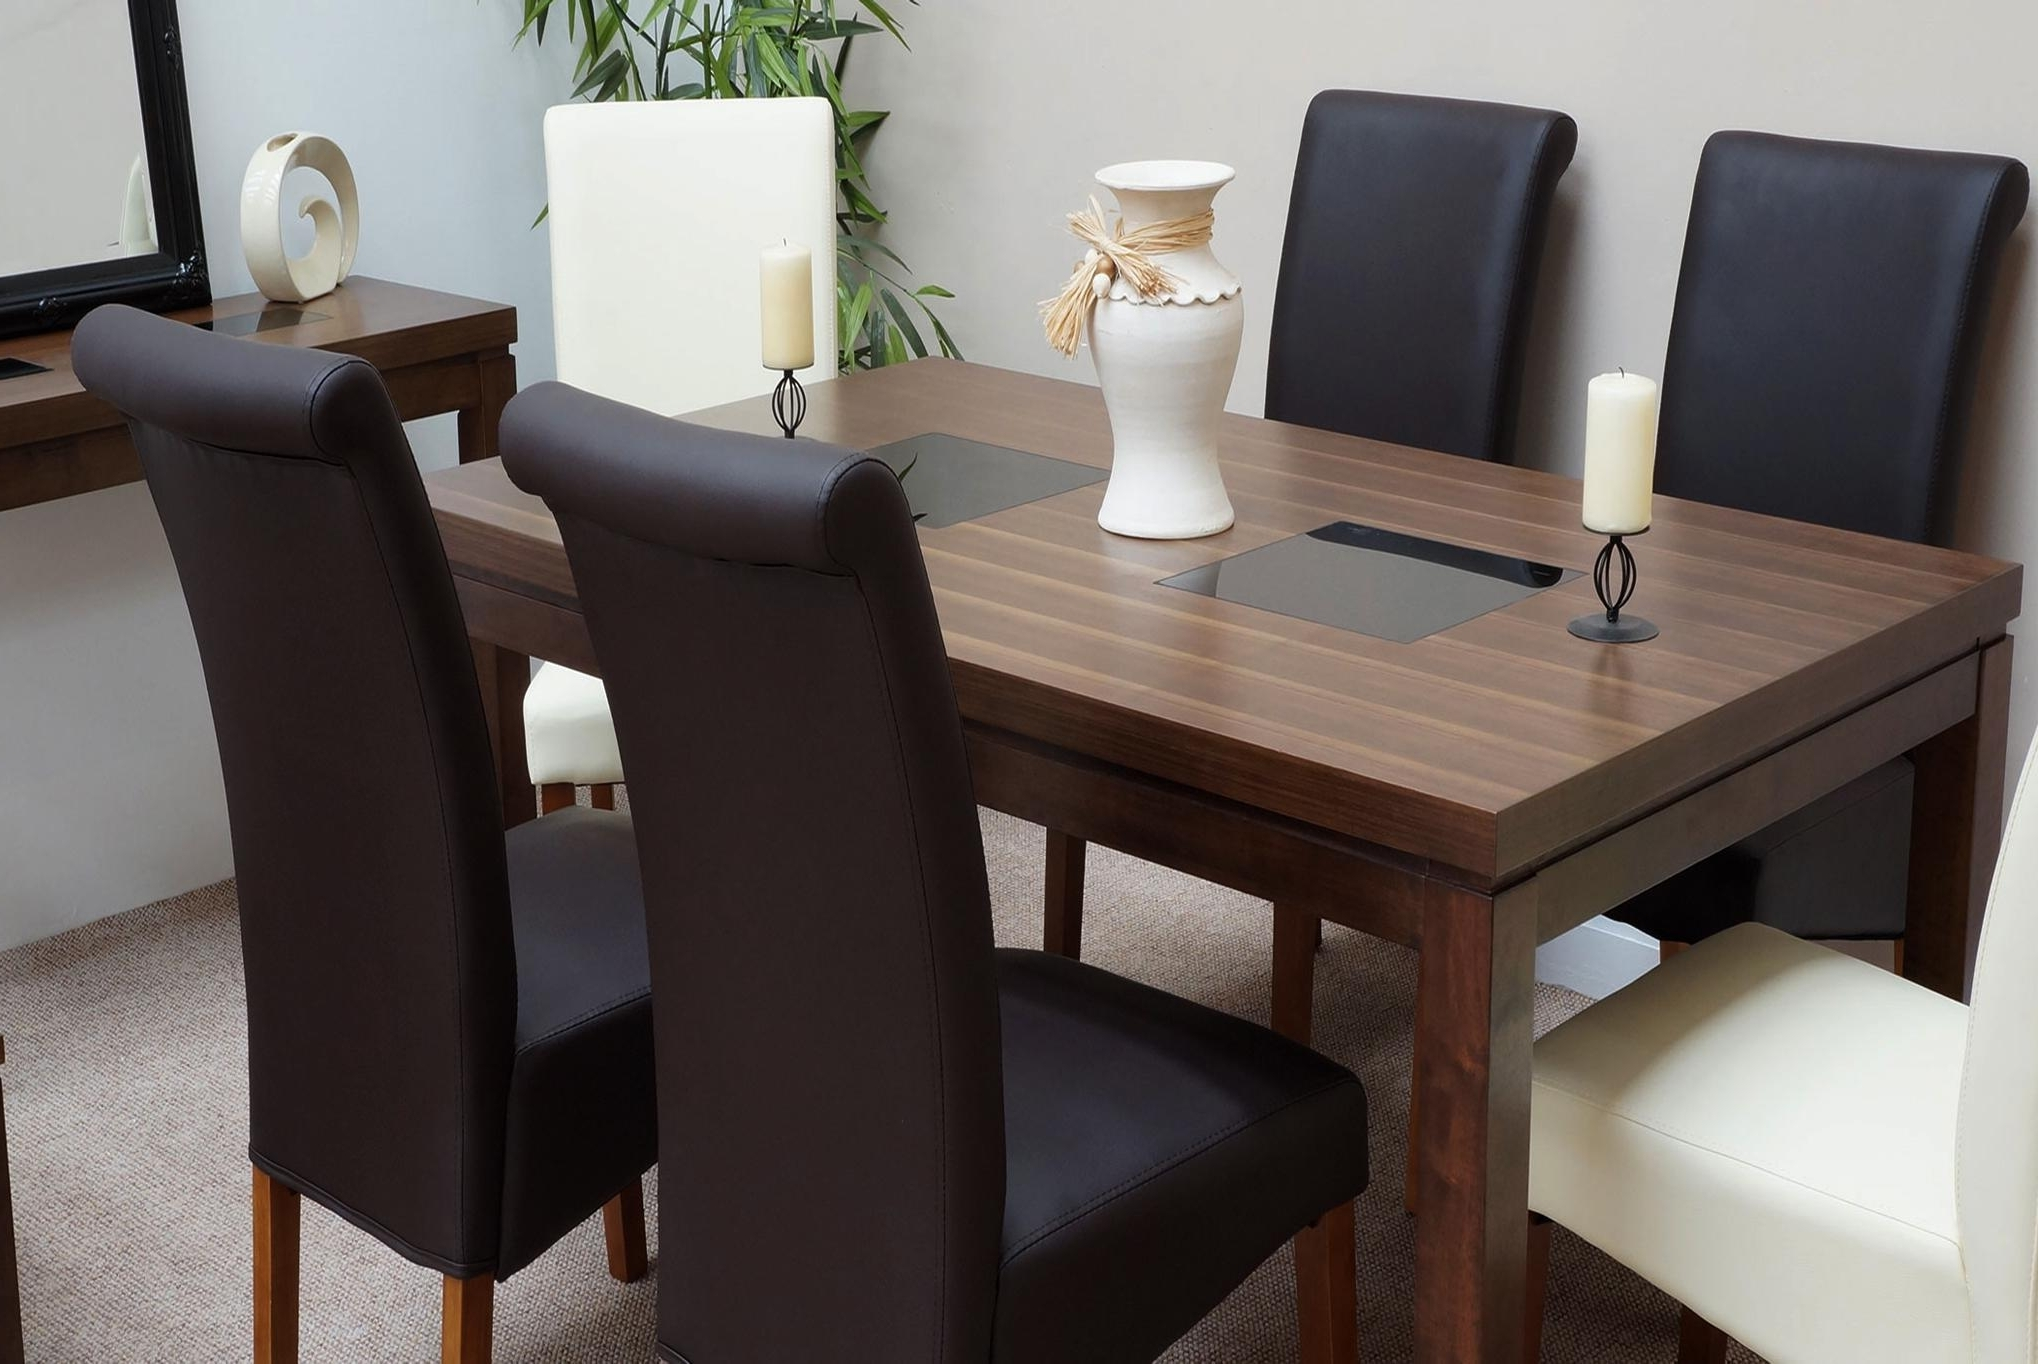 2018 Sydney Walnut 5Ft+ 6 Chairs – Dublin, Ireland Furniture Store Throughout Walnut Dining Table And 6 Chairs (Gallery 3 of 25)